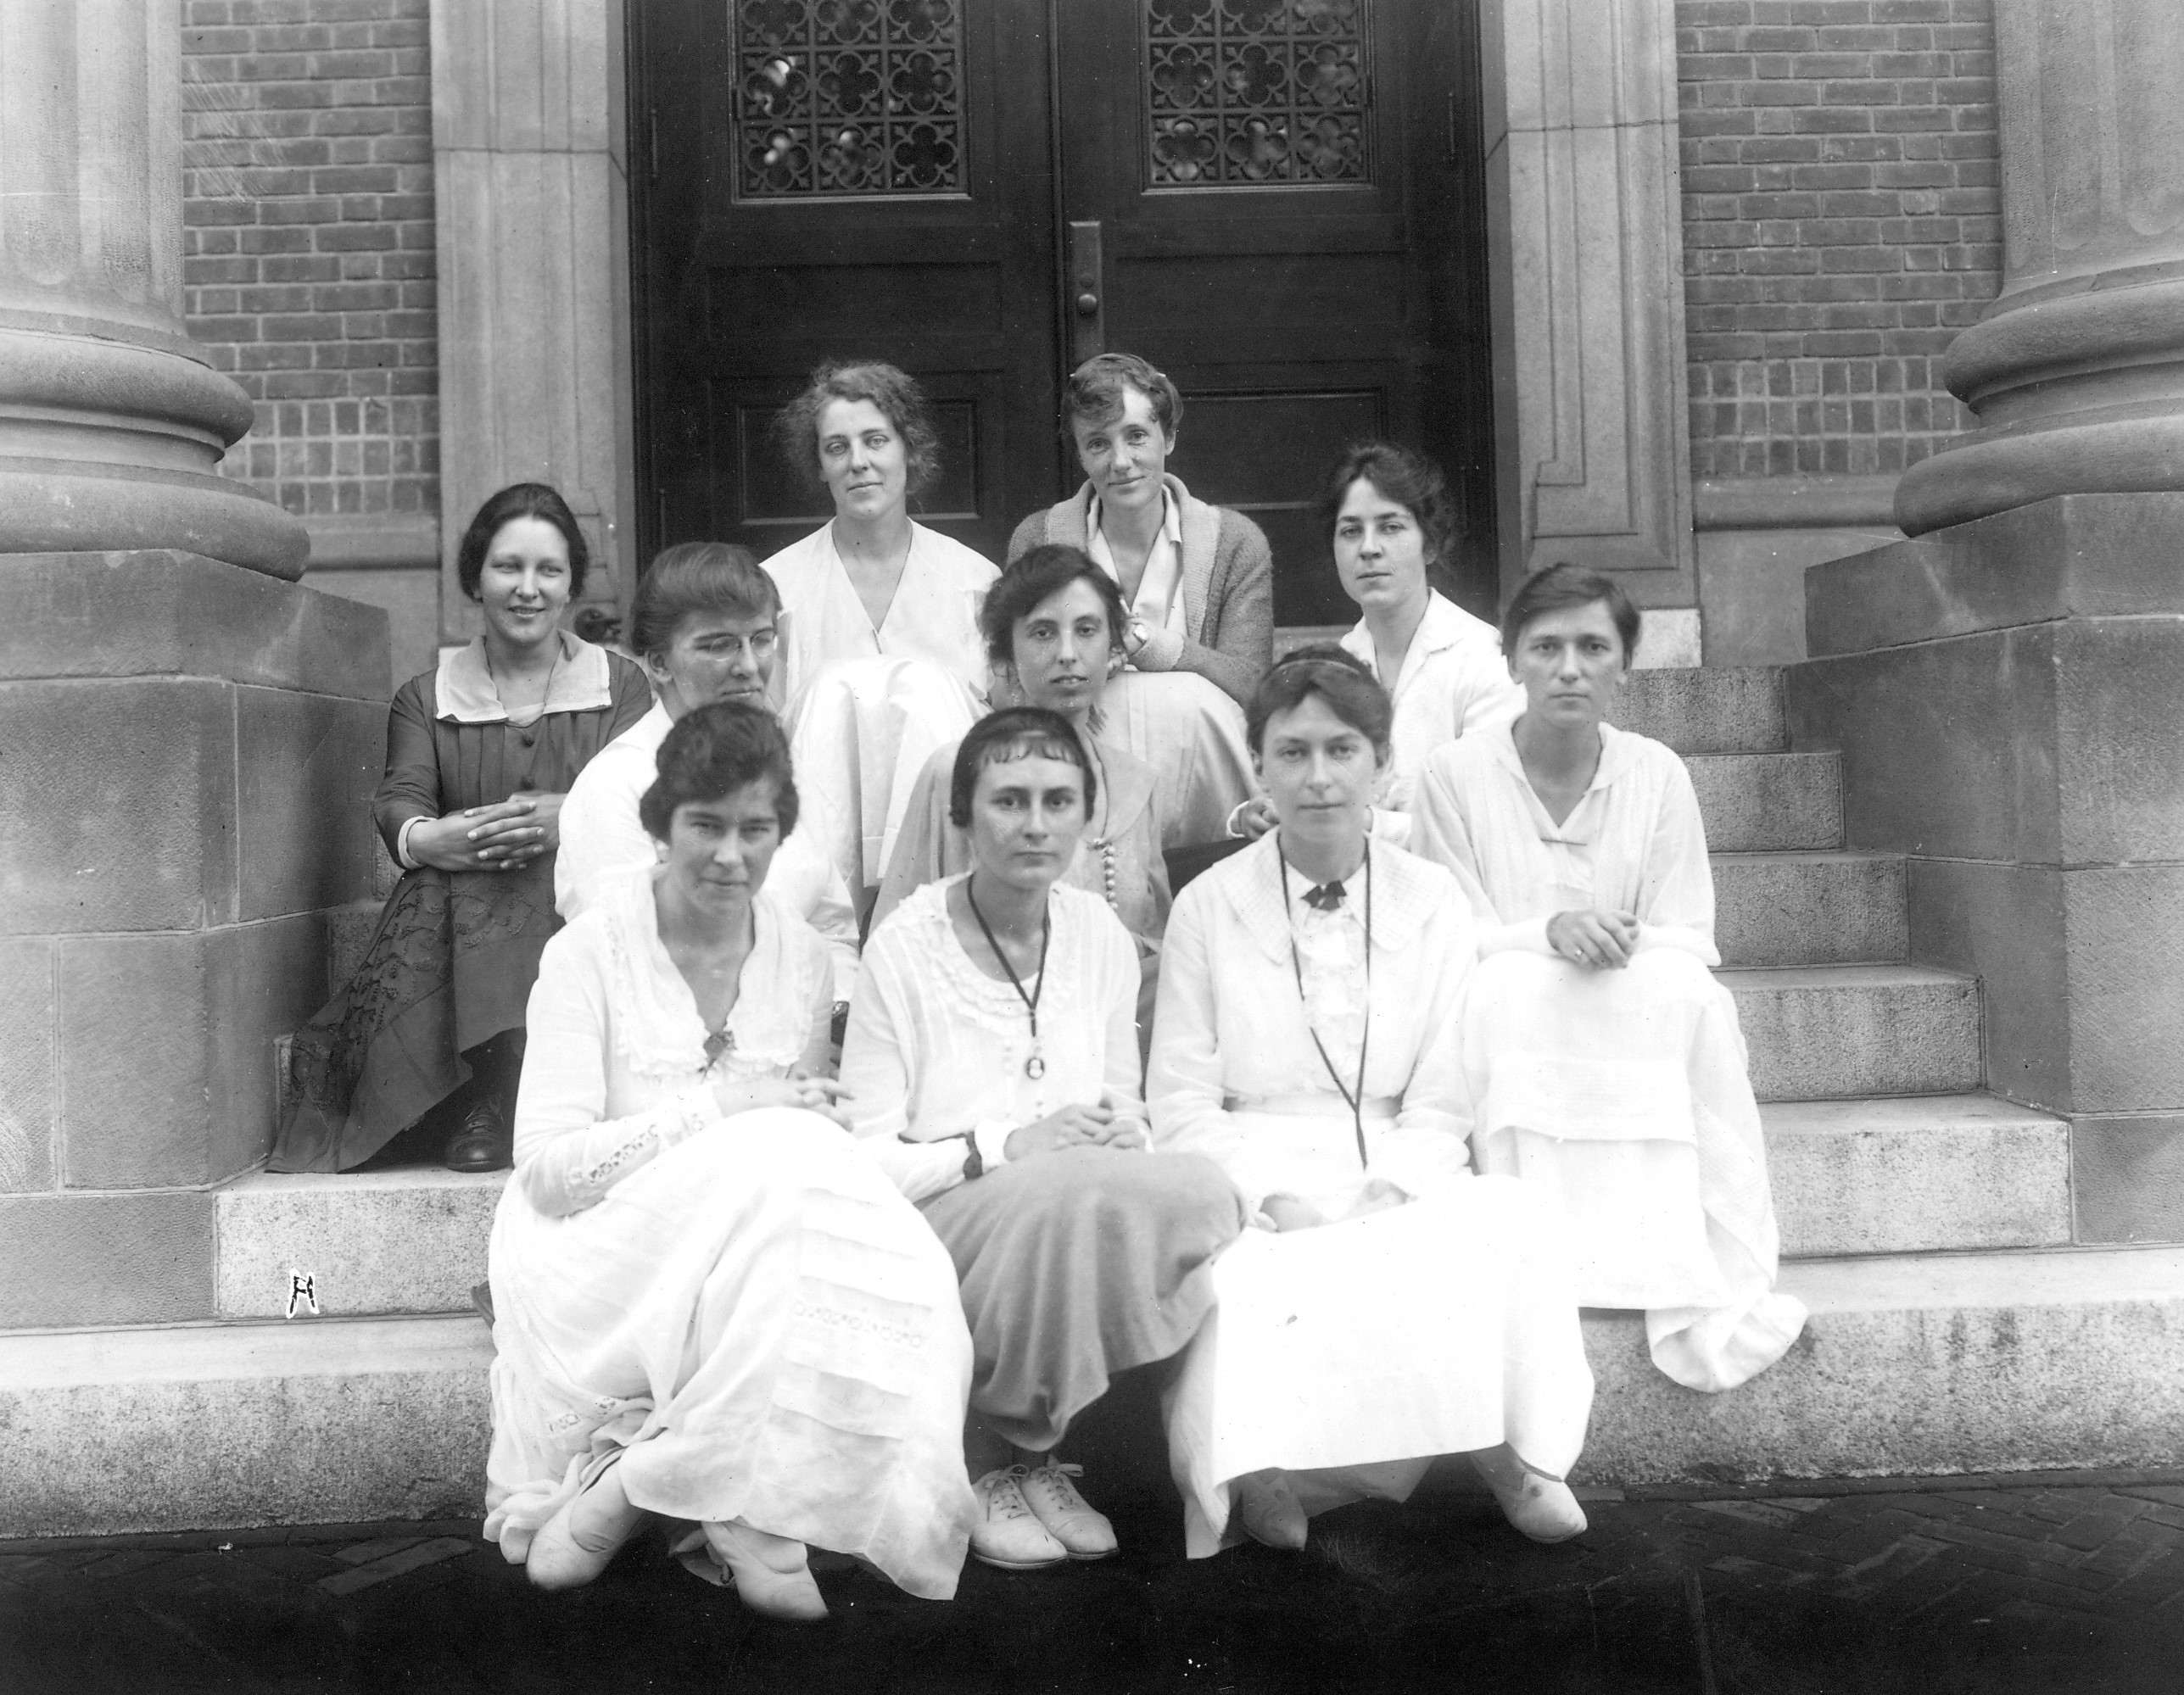 Black and white photo of ten women from the Smith School for Social Work, sitting on steps.